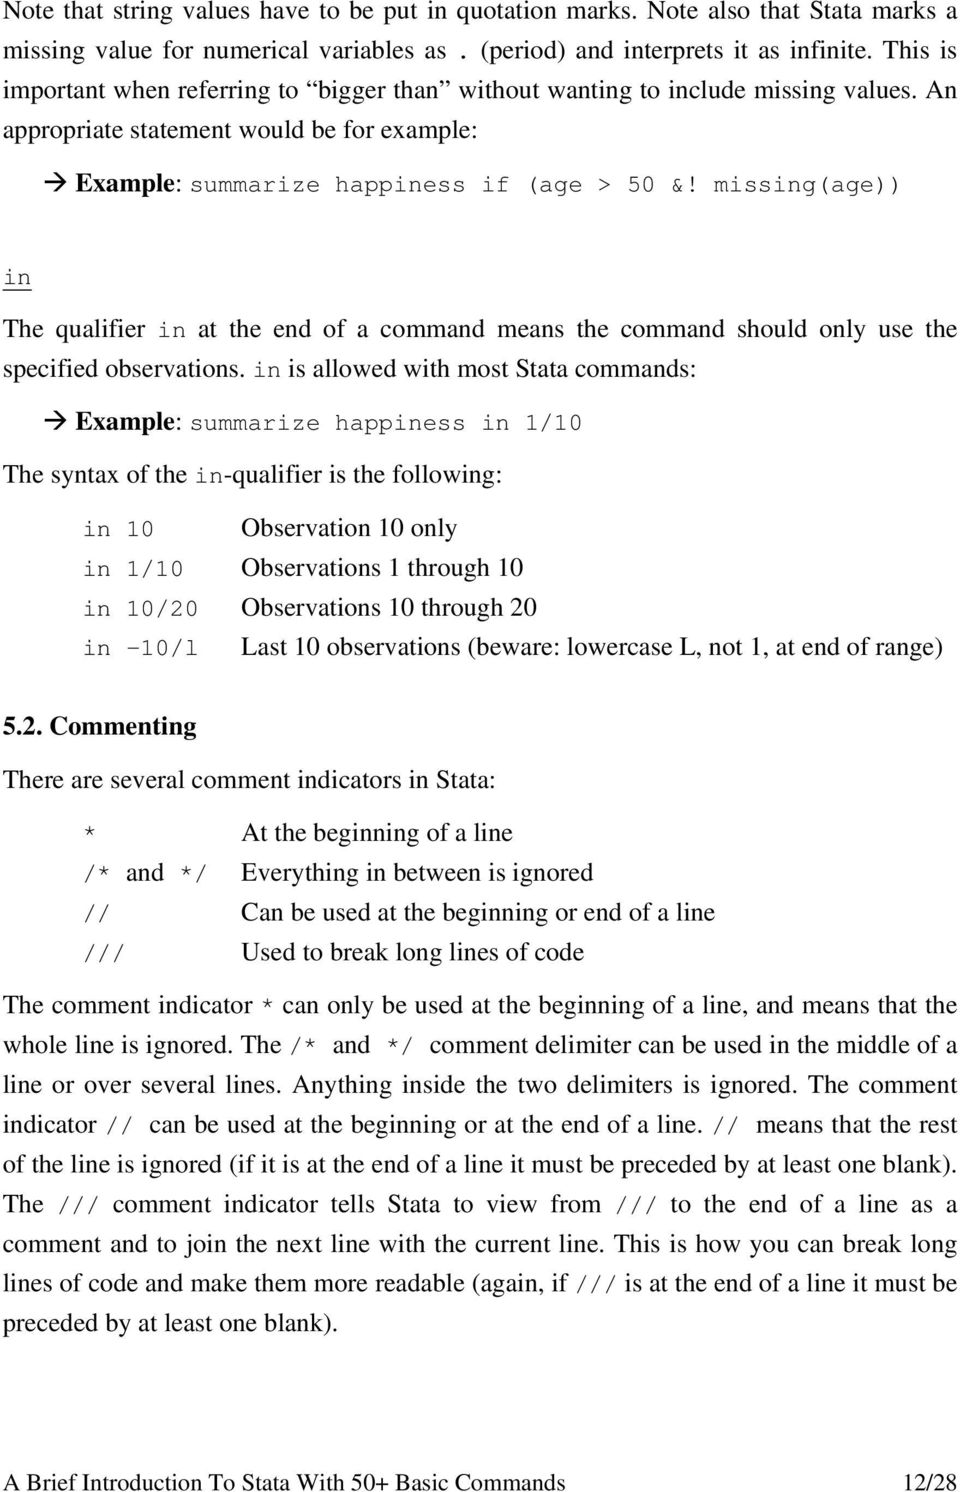 missing(age)) in The qualifier in at the end of a command means the command should only use the specified observations.